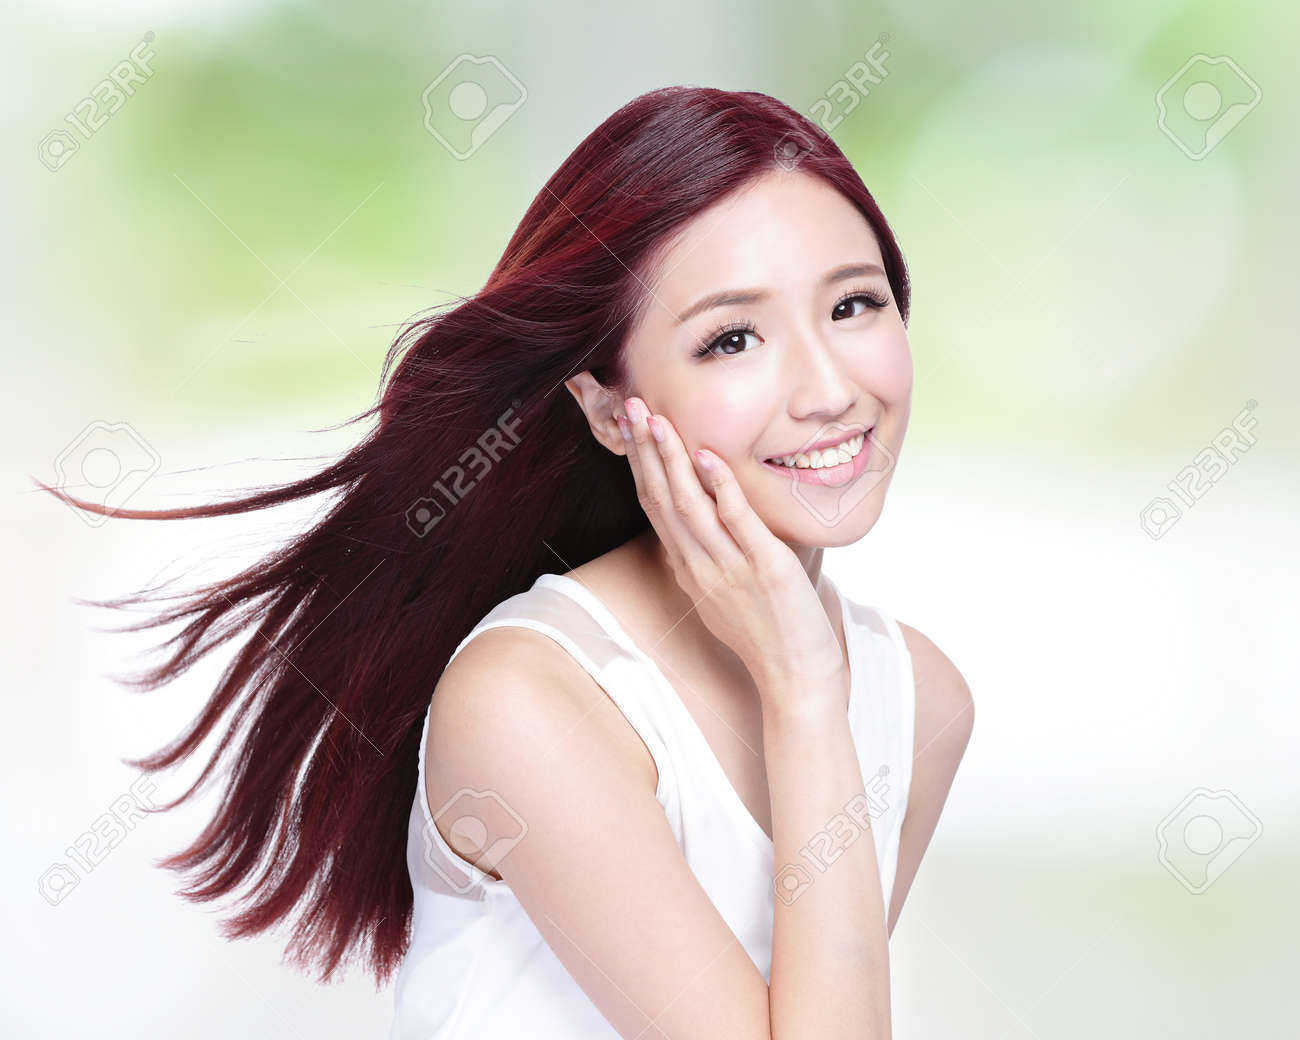 Beauty woman with charming smile with health skin, teeth and hair with nature green background, asian beauty Stock Photo - 46115887